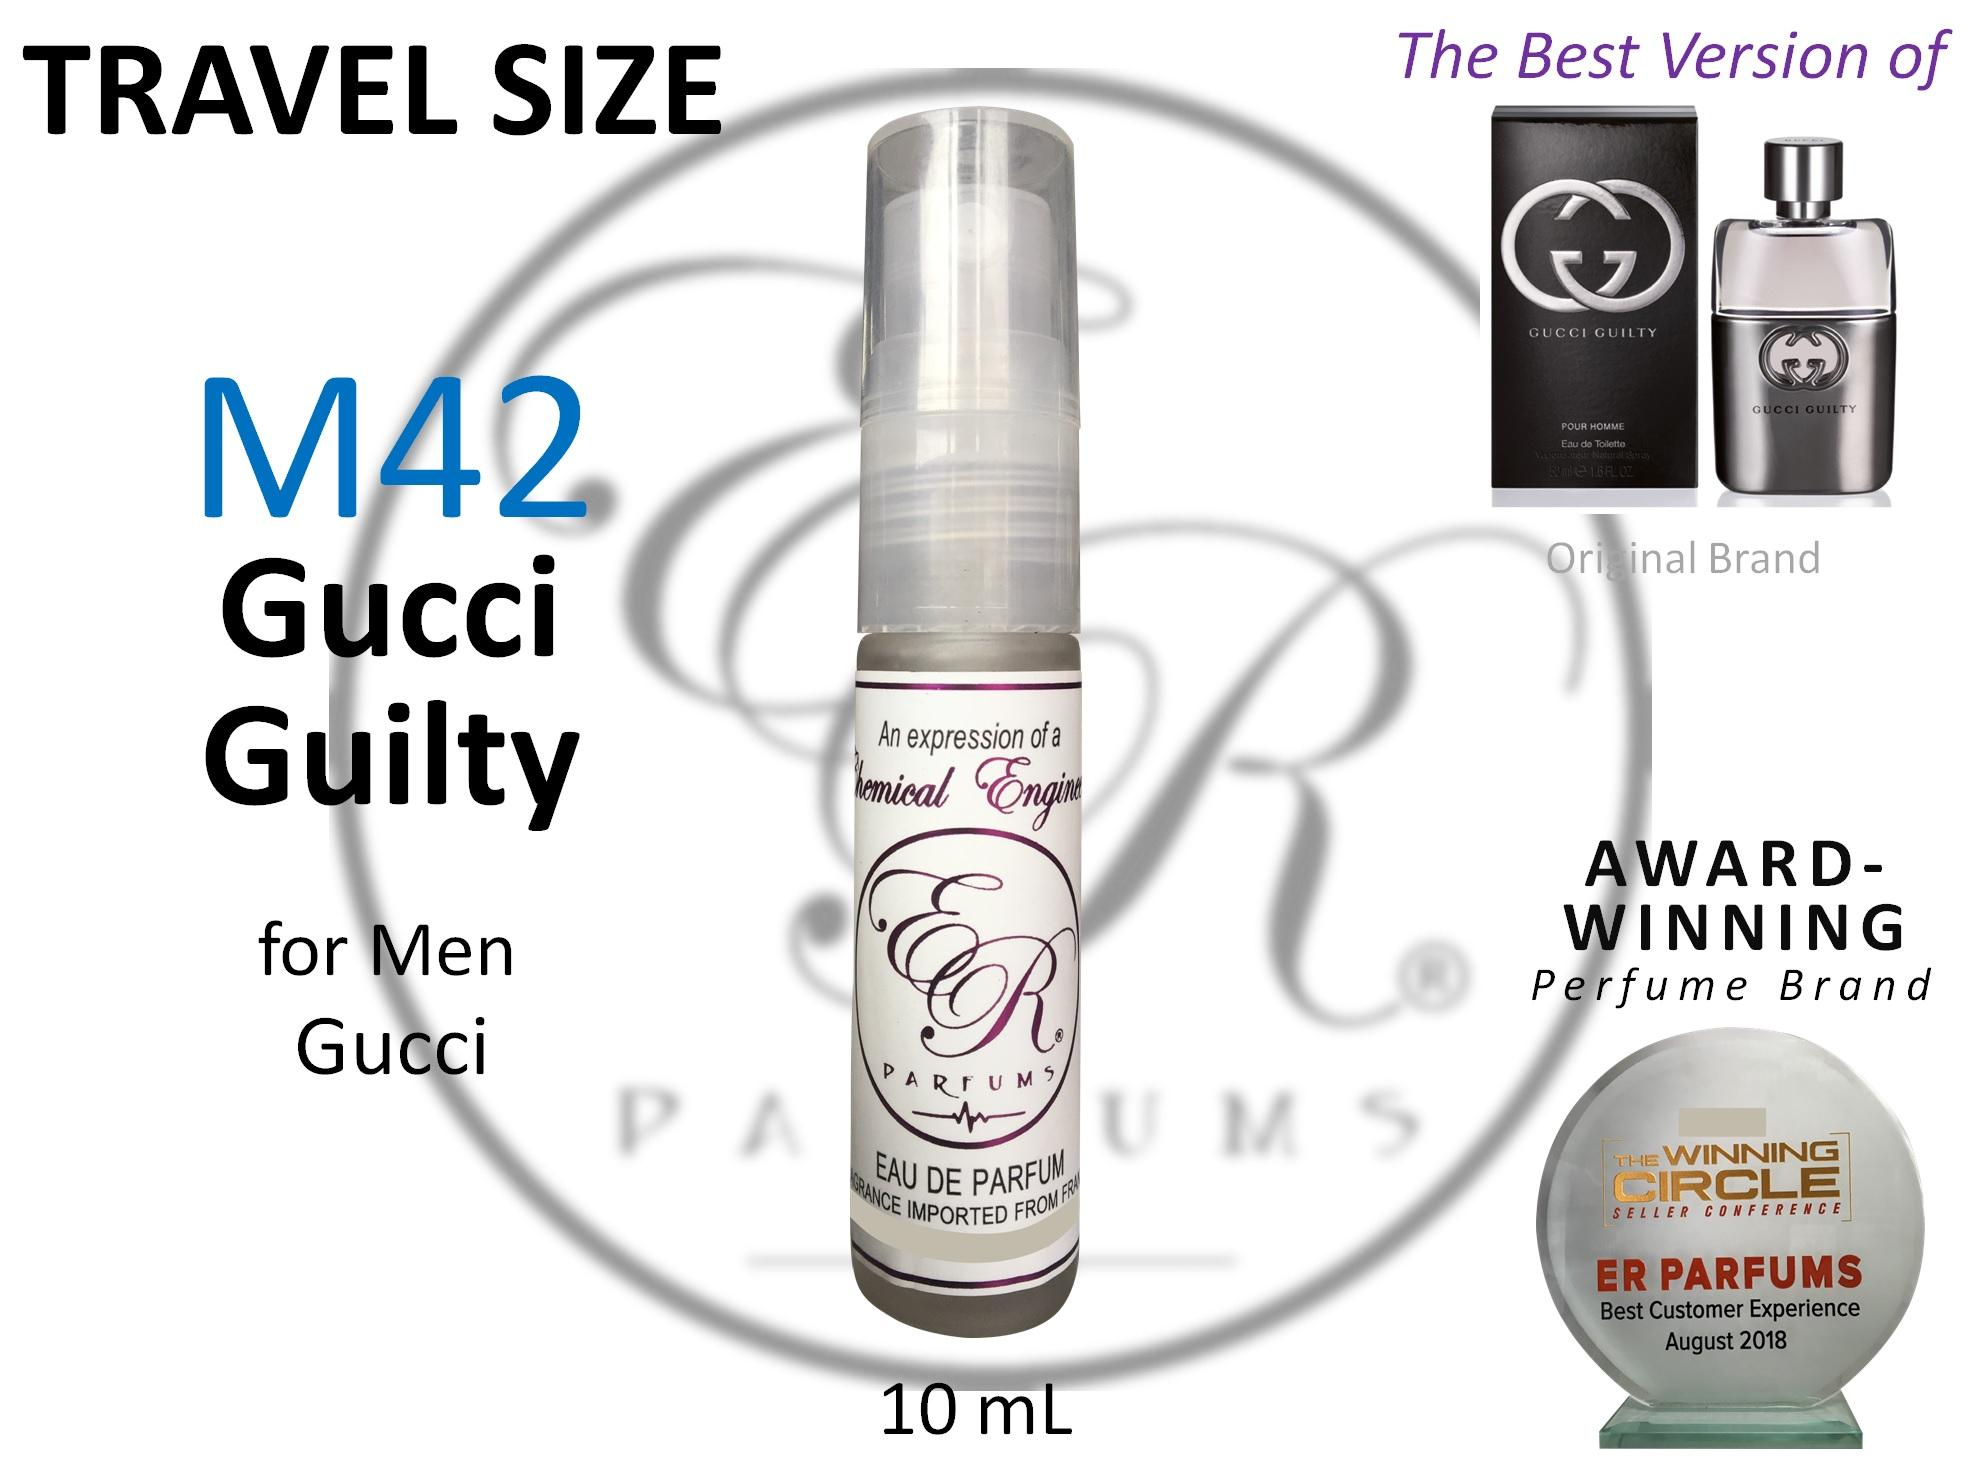 ER PARFUMS M42 Gucci Guilty for Men by Gucci 1 piece 10 ml TRAVEL SIZE - BEST VERSION